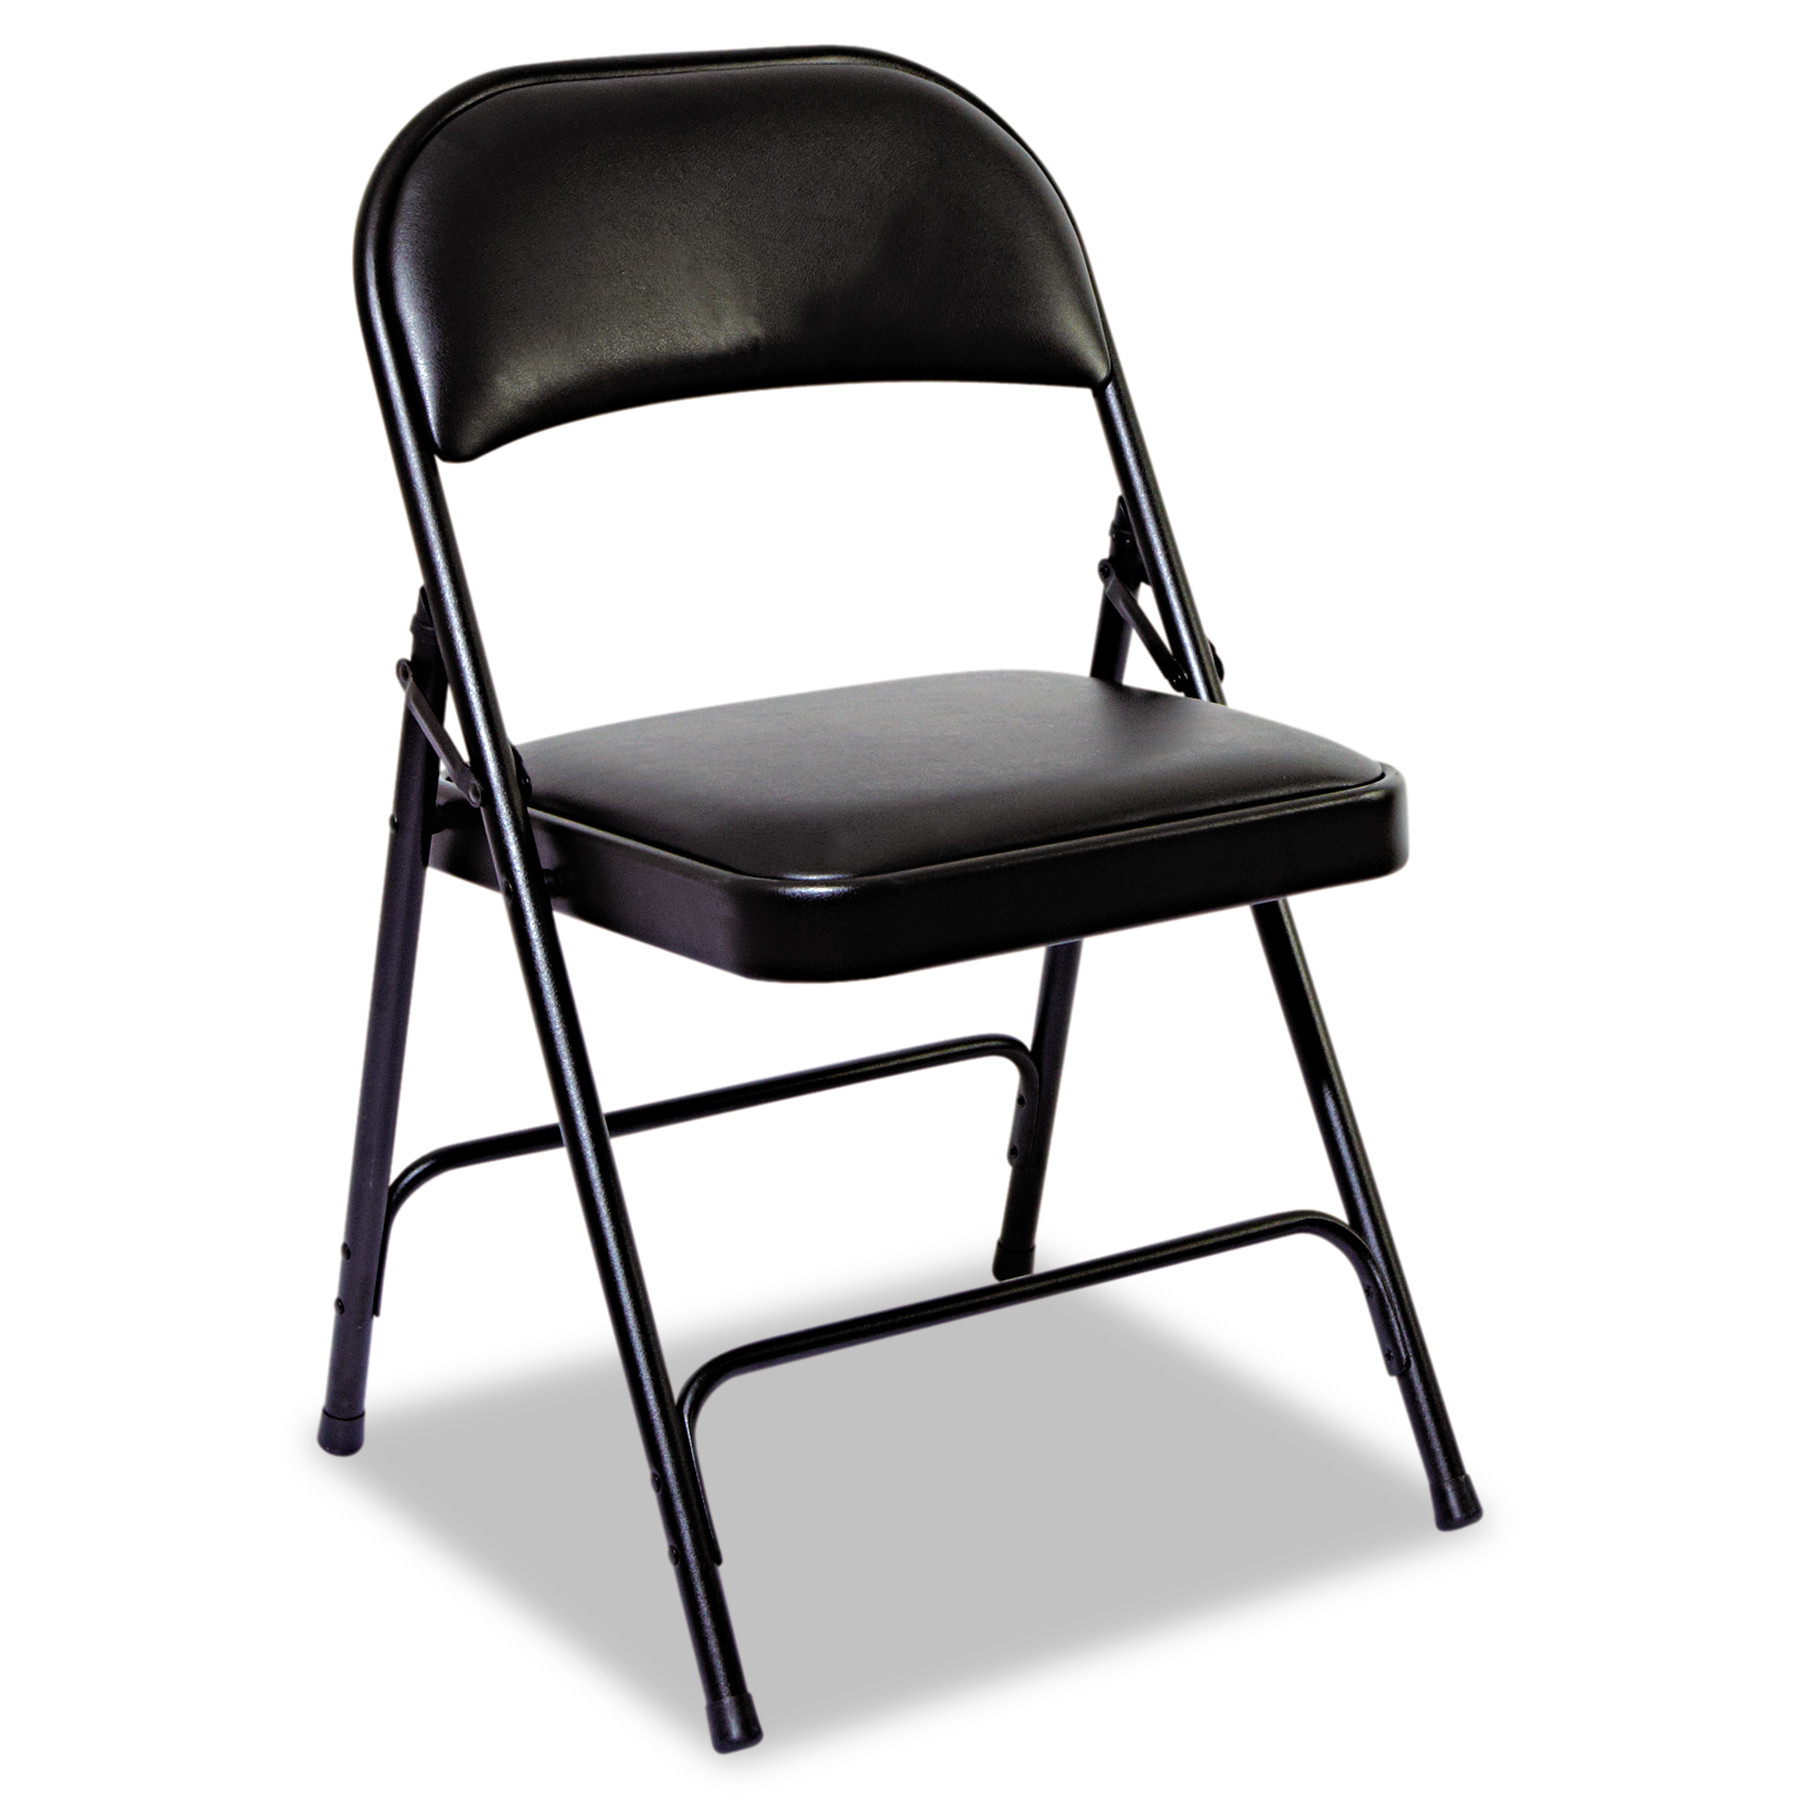 Alera Steel Folding Chair with Two-Brace Support, Padded Back Seat, Graphite, 4 Per Carton by ALERA